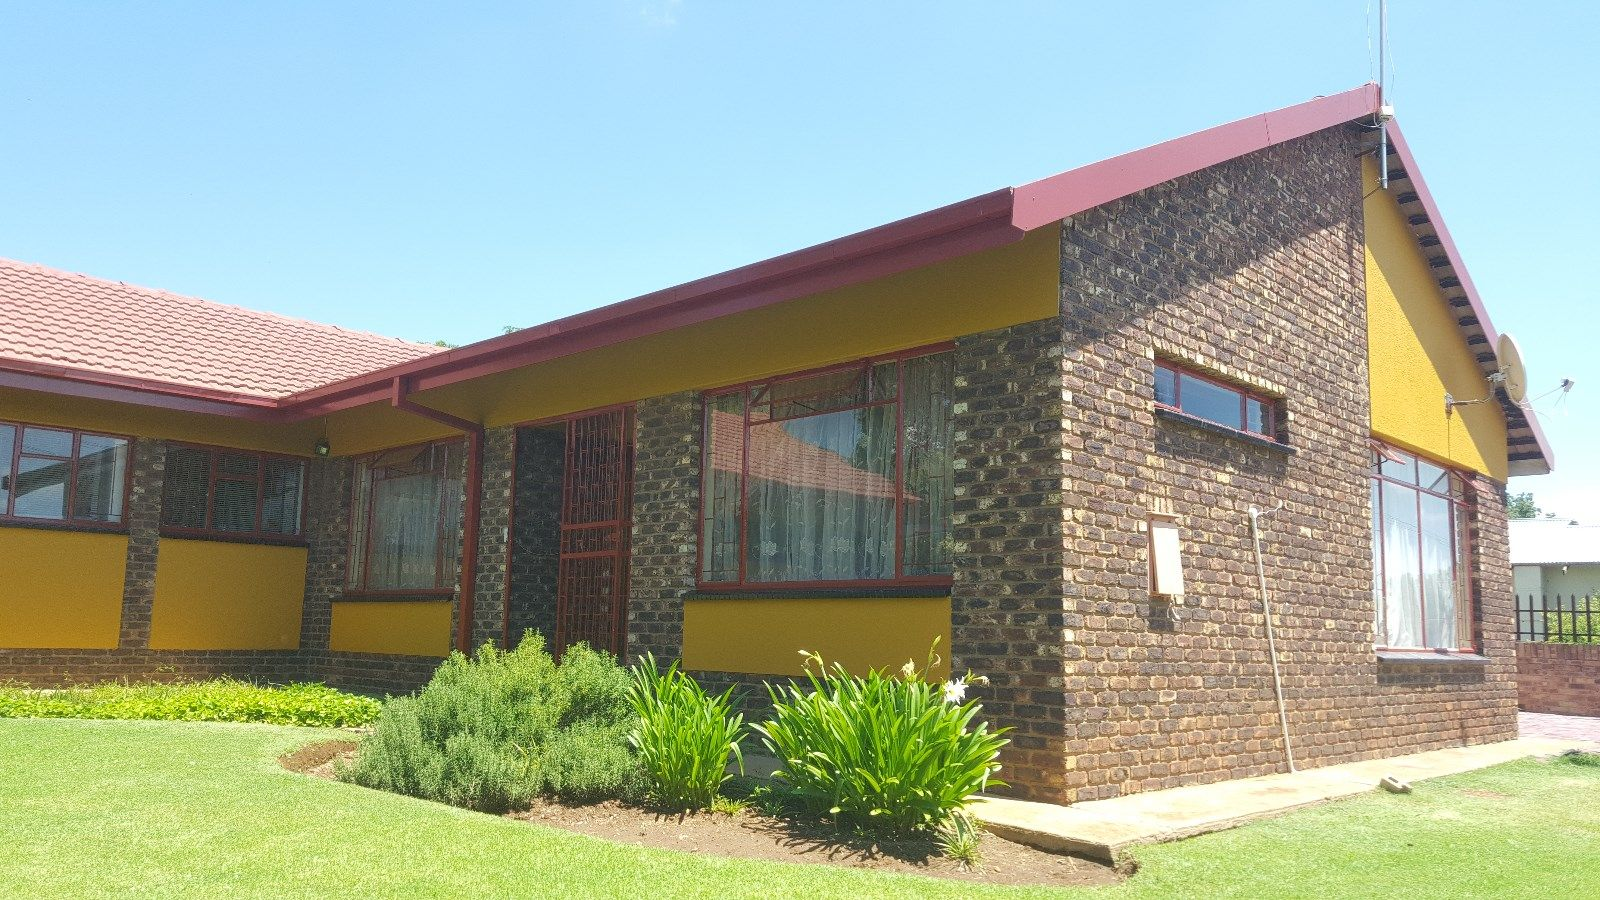 Potchefstroom Central for sale property. Ref No: 13451730. Picture no 1